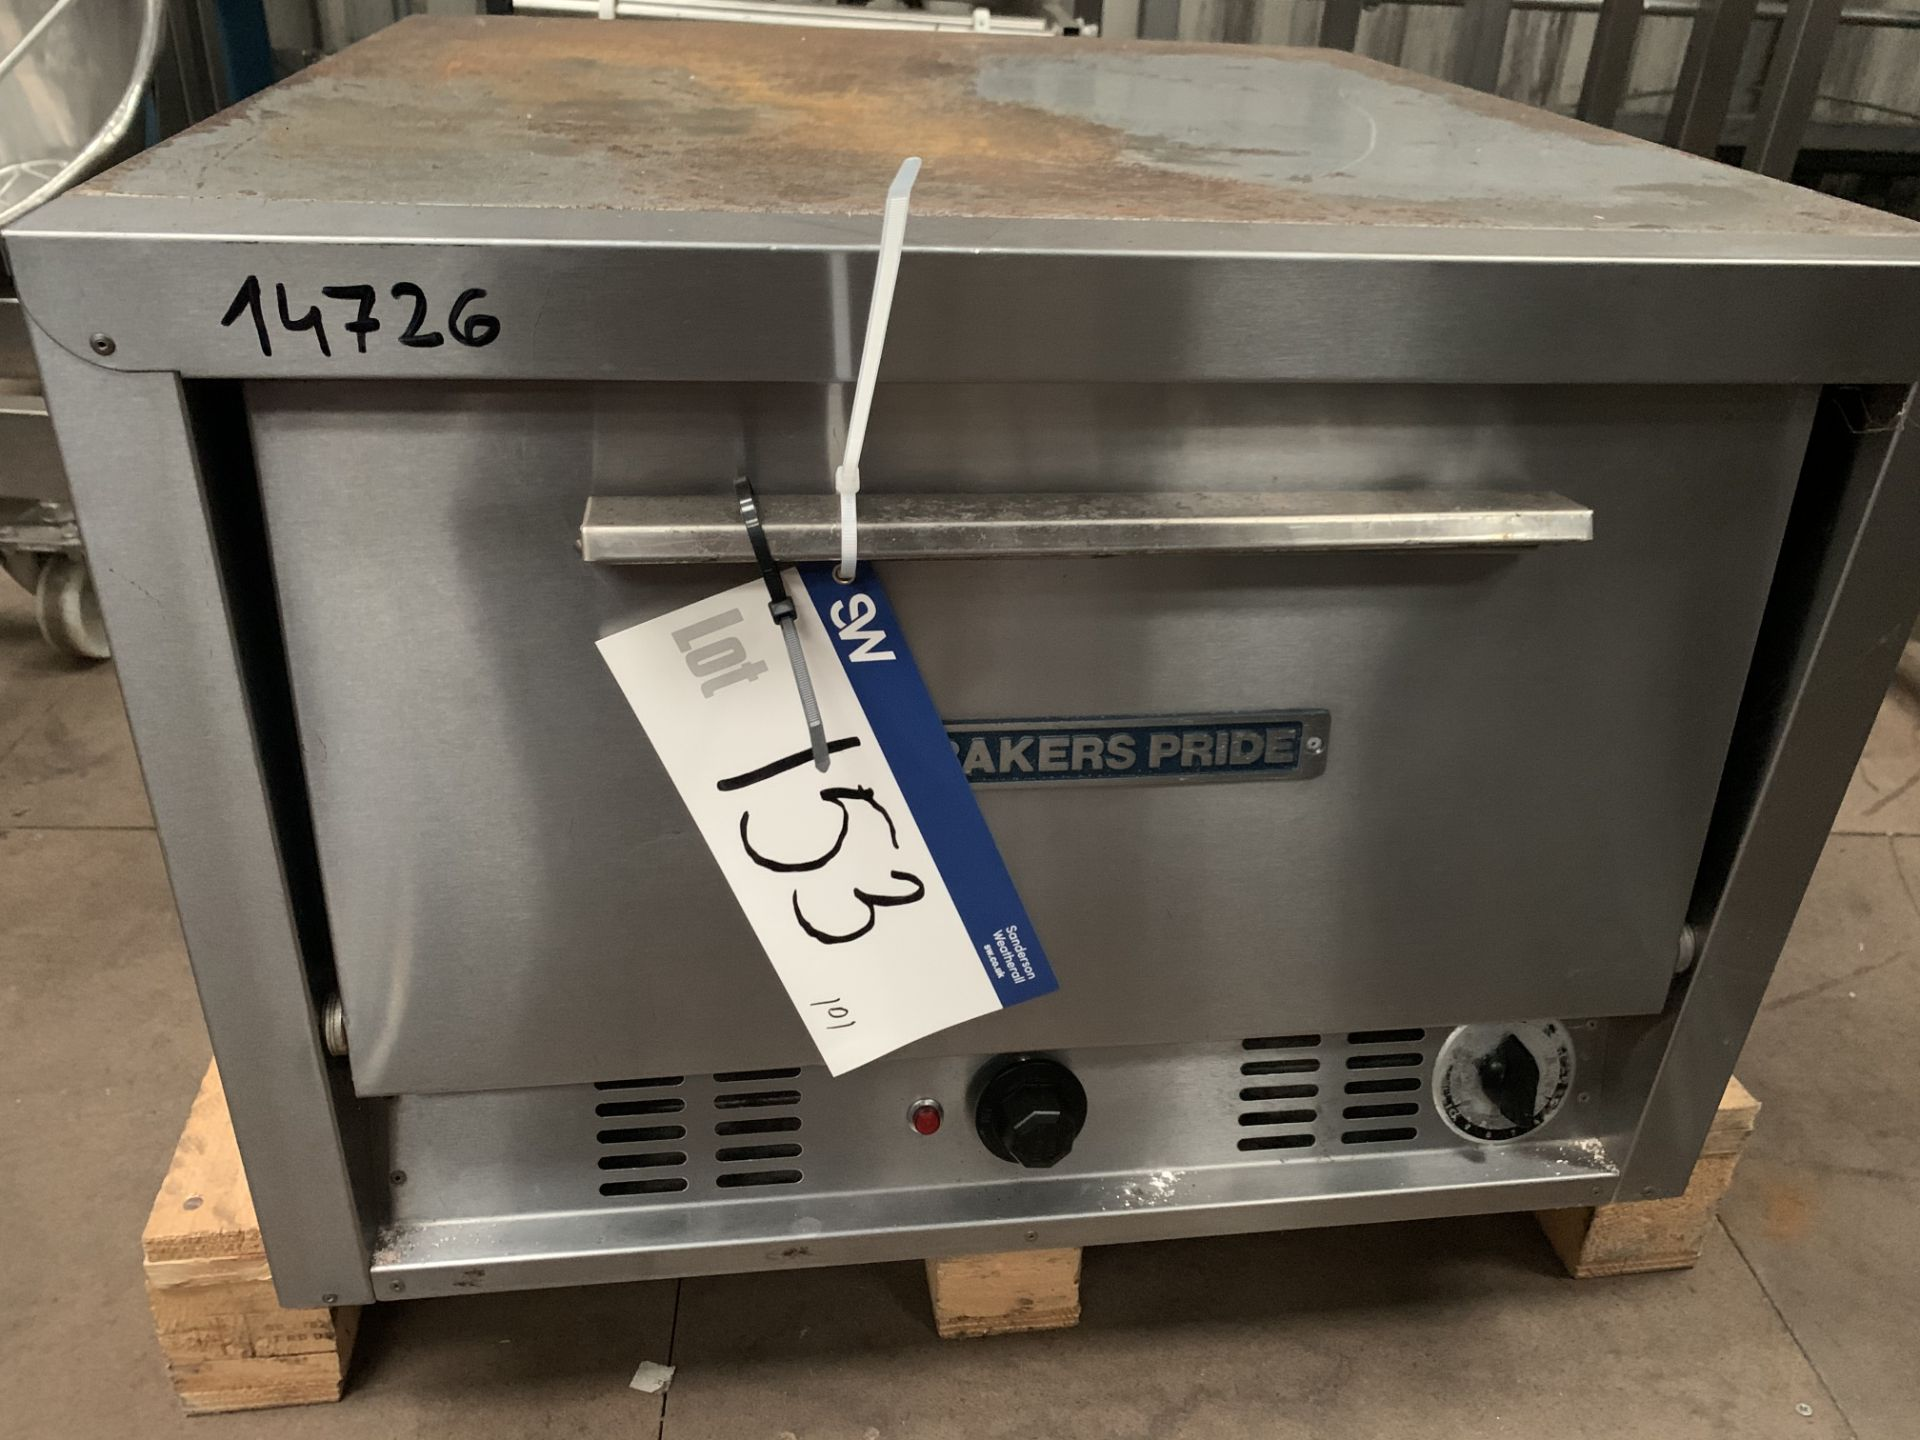 P22 Bakers Pride Two Shelf Stone Oven, serial no. 2535, plant no. 14726, year of manufacture N/A,